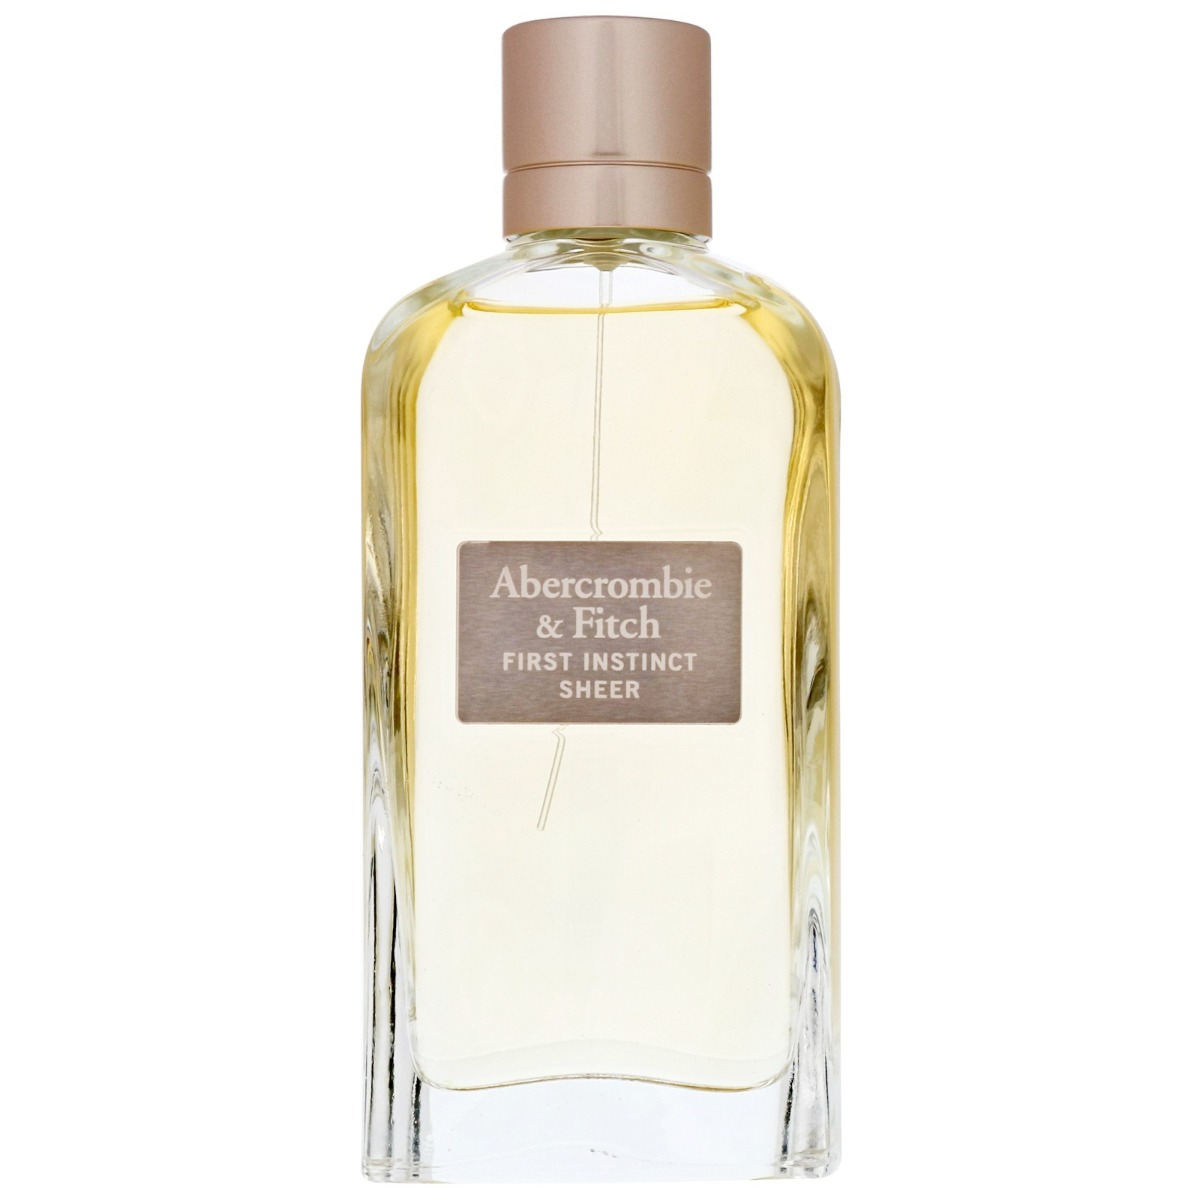 Abercrombie & Fitch First Instinct Sheer (U) edp 50ml